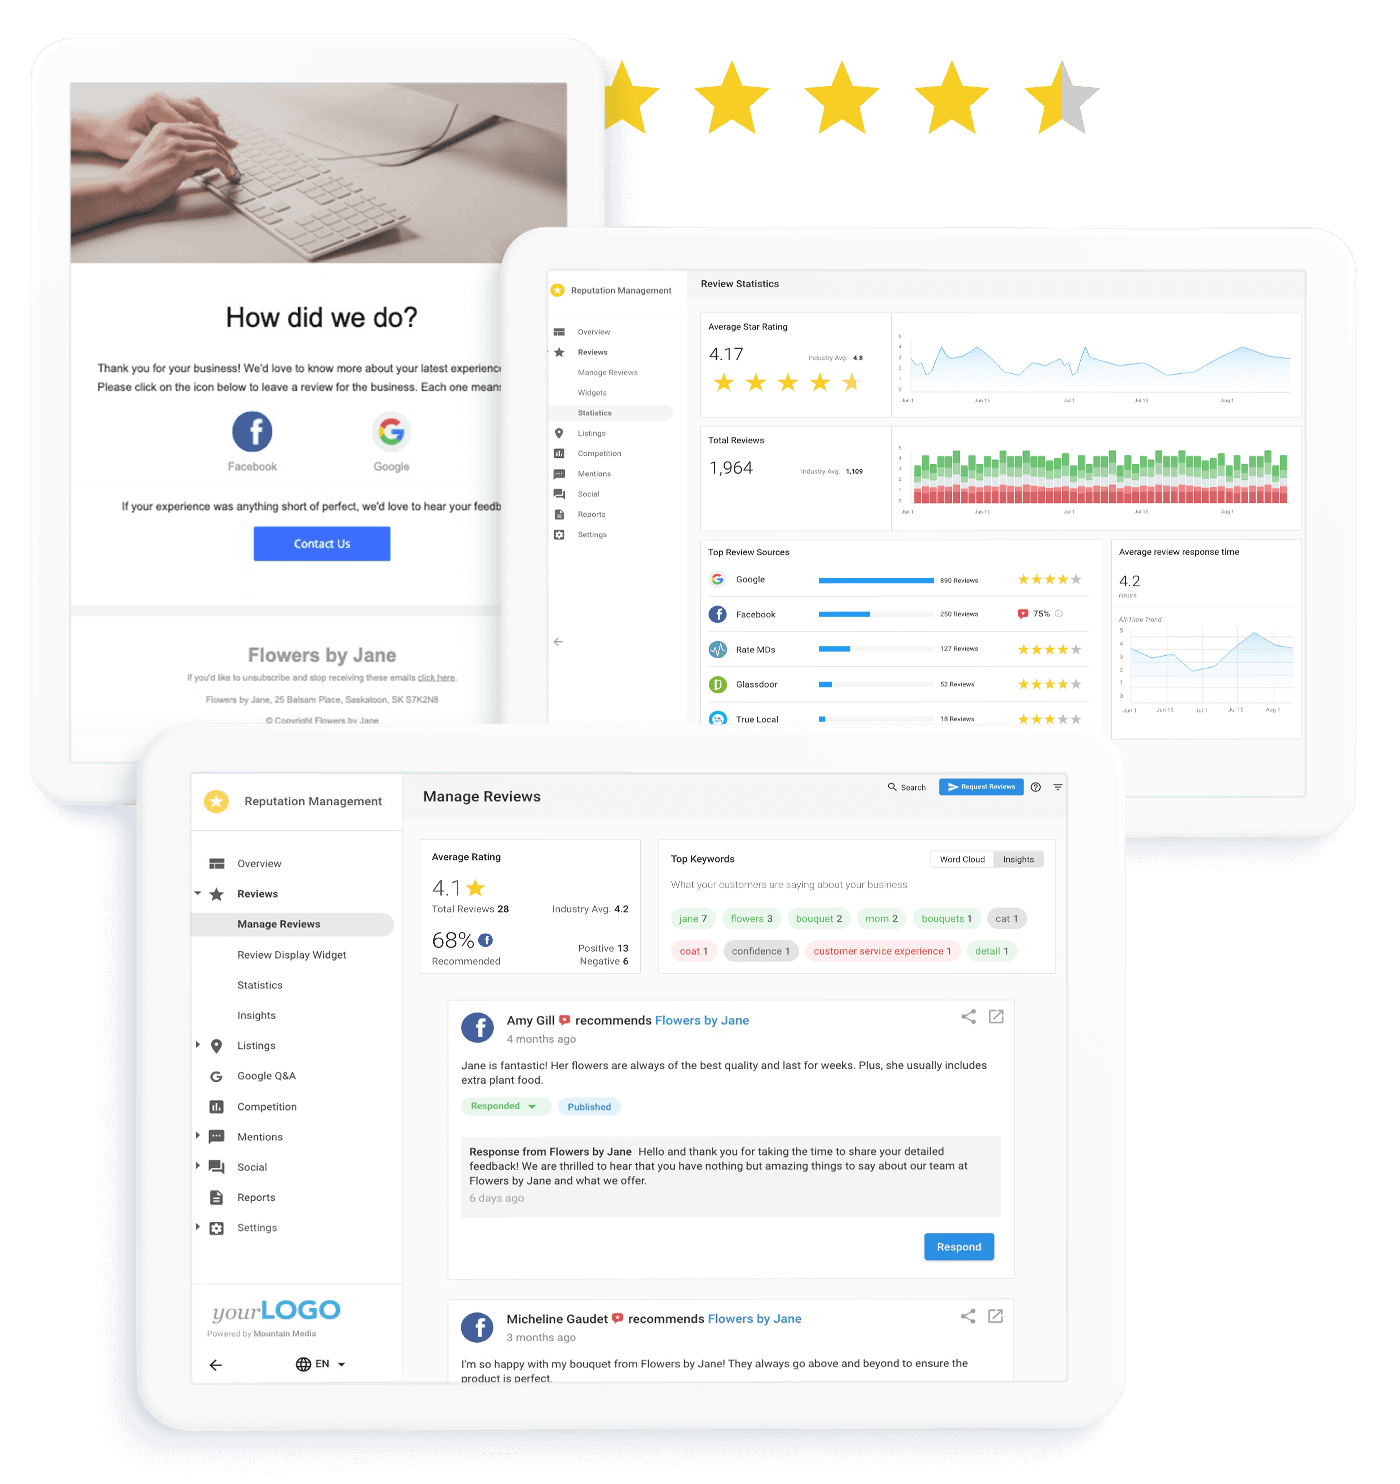 Stay on top of what your customers are saying about you and why.   Monitor and manage all aspects of your online reputation, including listings, reviews, mentions and more.   Manage your reviews from multiple review sites in one place.   Stay on top of your review on all of the most popular review sites, including Facebook, Google+, and Yelp as well as a ton of sites that are relevant to your specific industry. Also, easily respond with 40+ curated responses, and gain critical insights into what your customers are saying most often and why.   View the accuracy of your business listing data across the web.   Improve your search rank by identifying online business listings that are inaccurate or missing from essential directories like Google, Facebook, Bing and 60+ others.